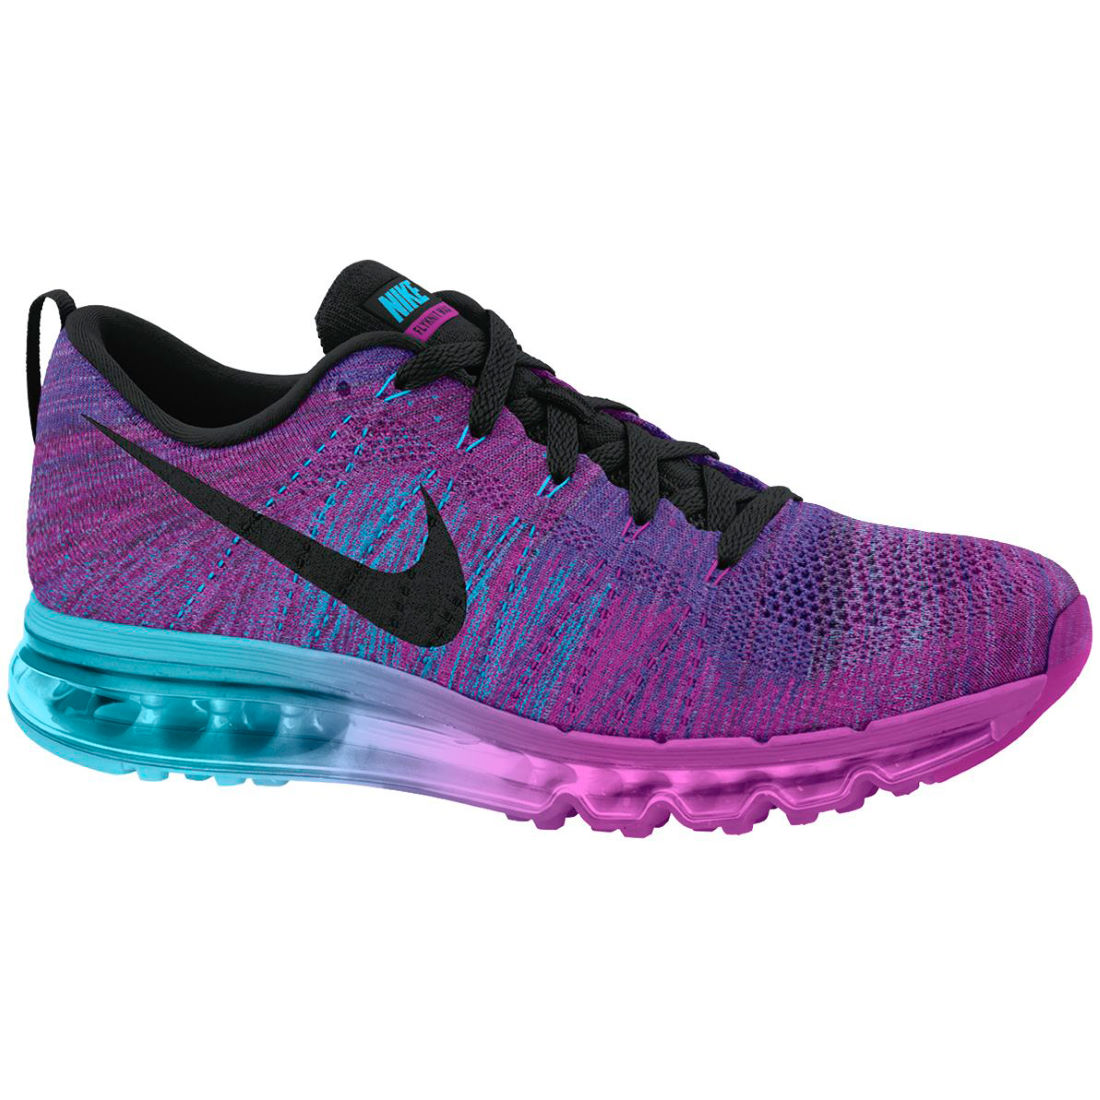 chaussures de running amorties nike women 39 s flyknit max shoes sp15 wiggle france. Black Bedroom Furniture Sets. Home Design Ideas